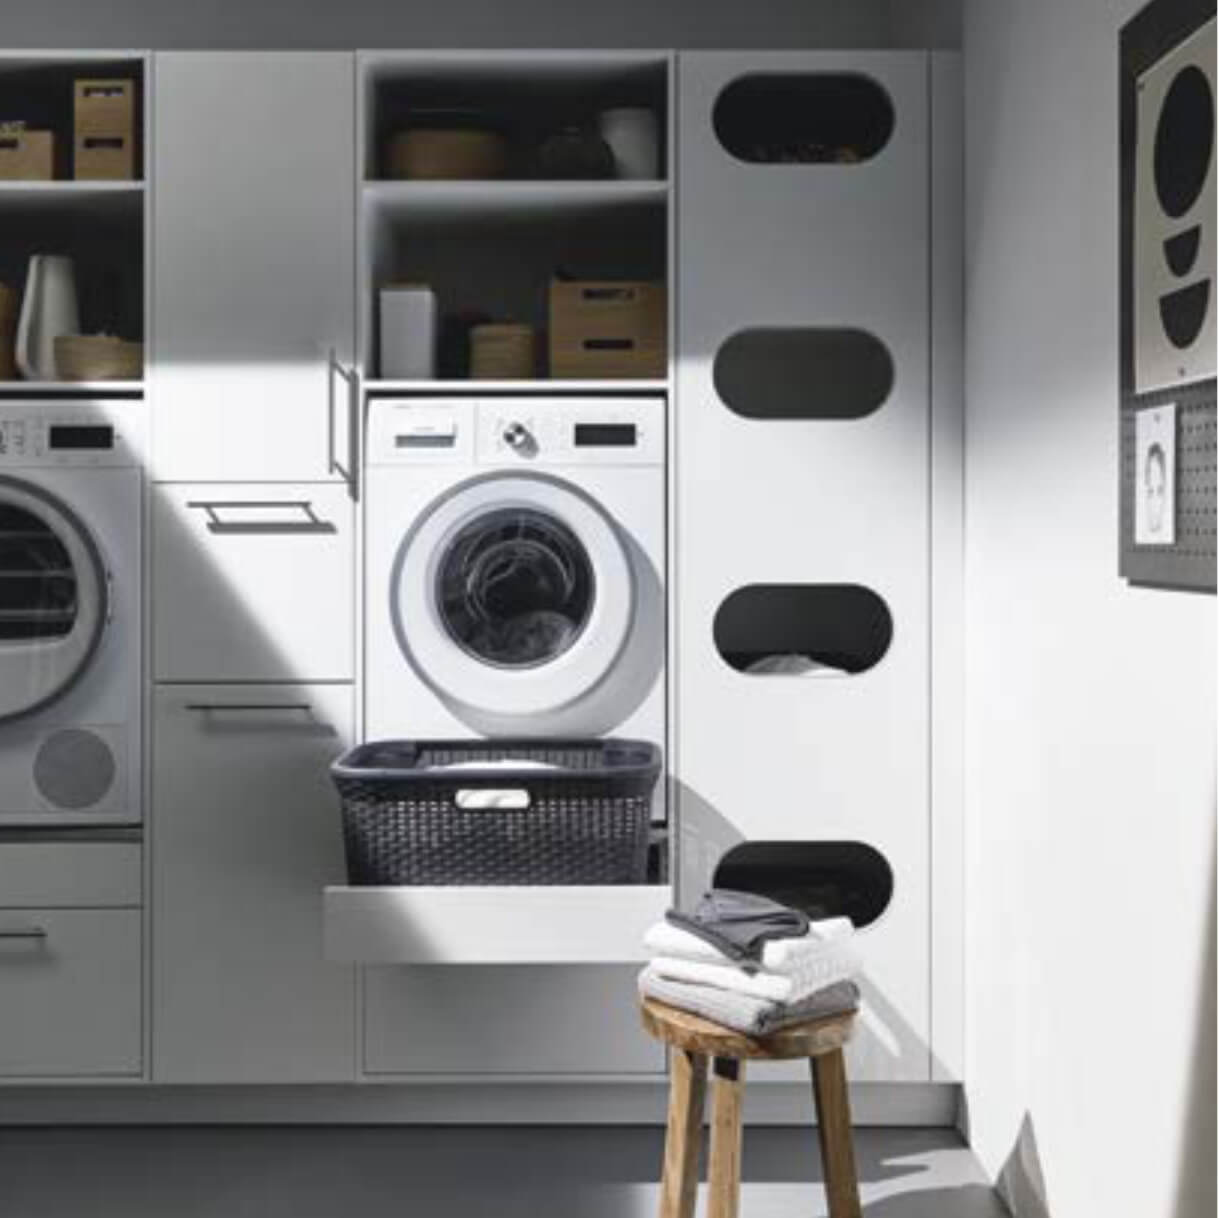 Washer and dryer in tall utility cupboards